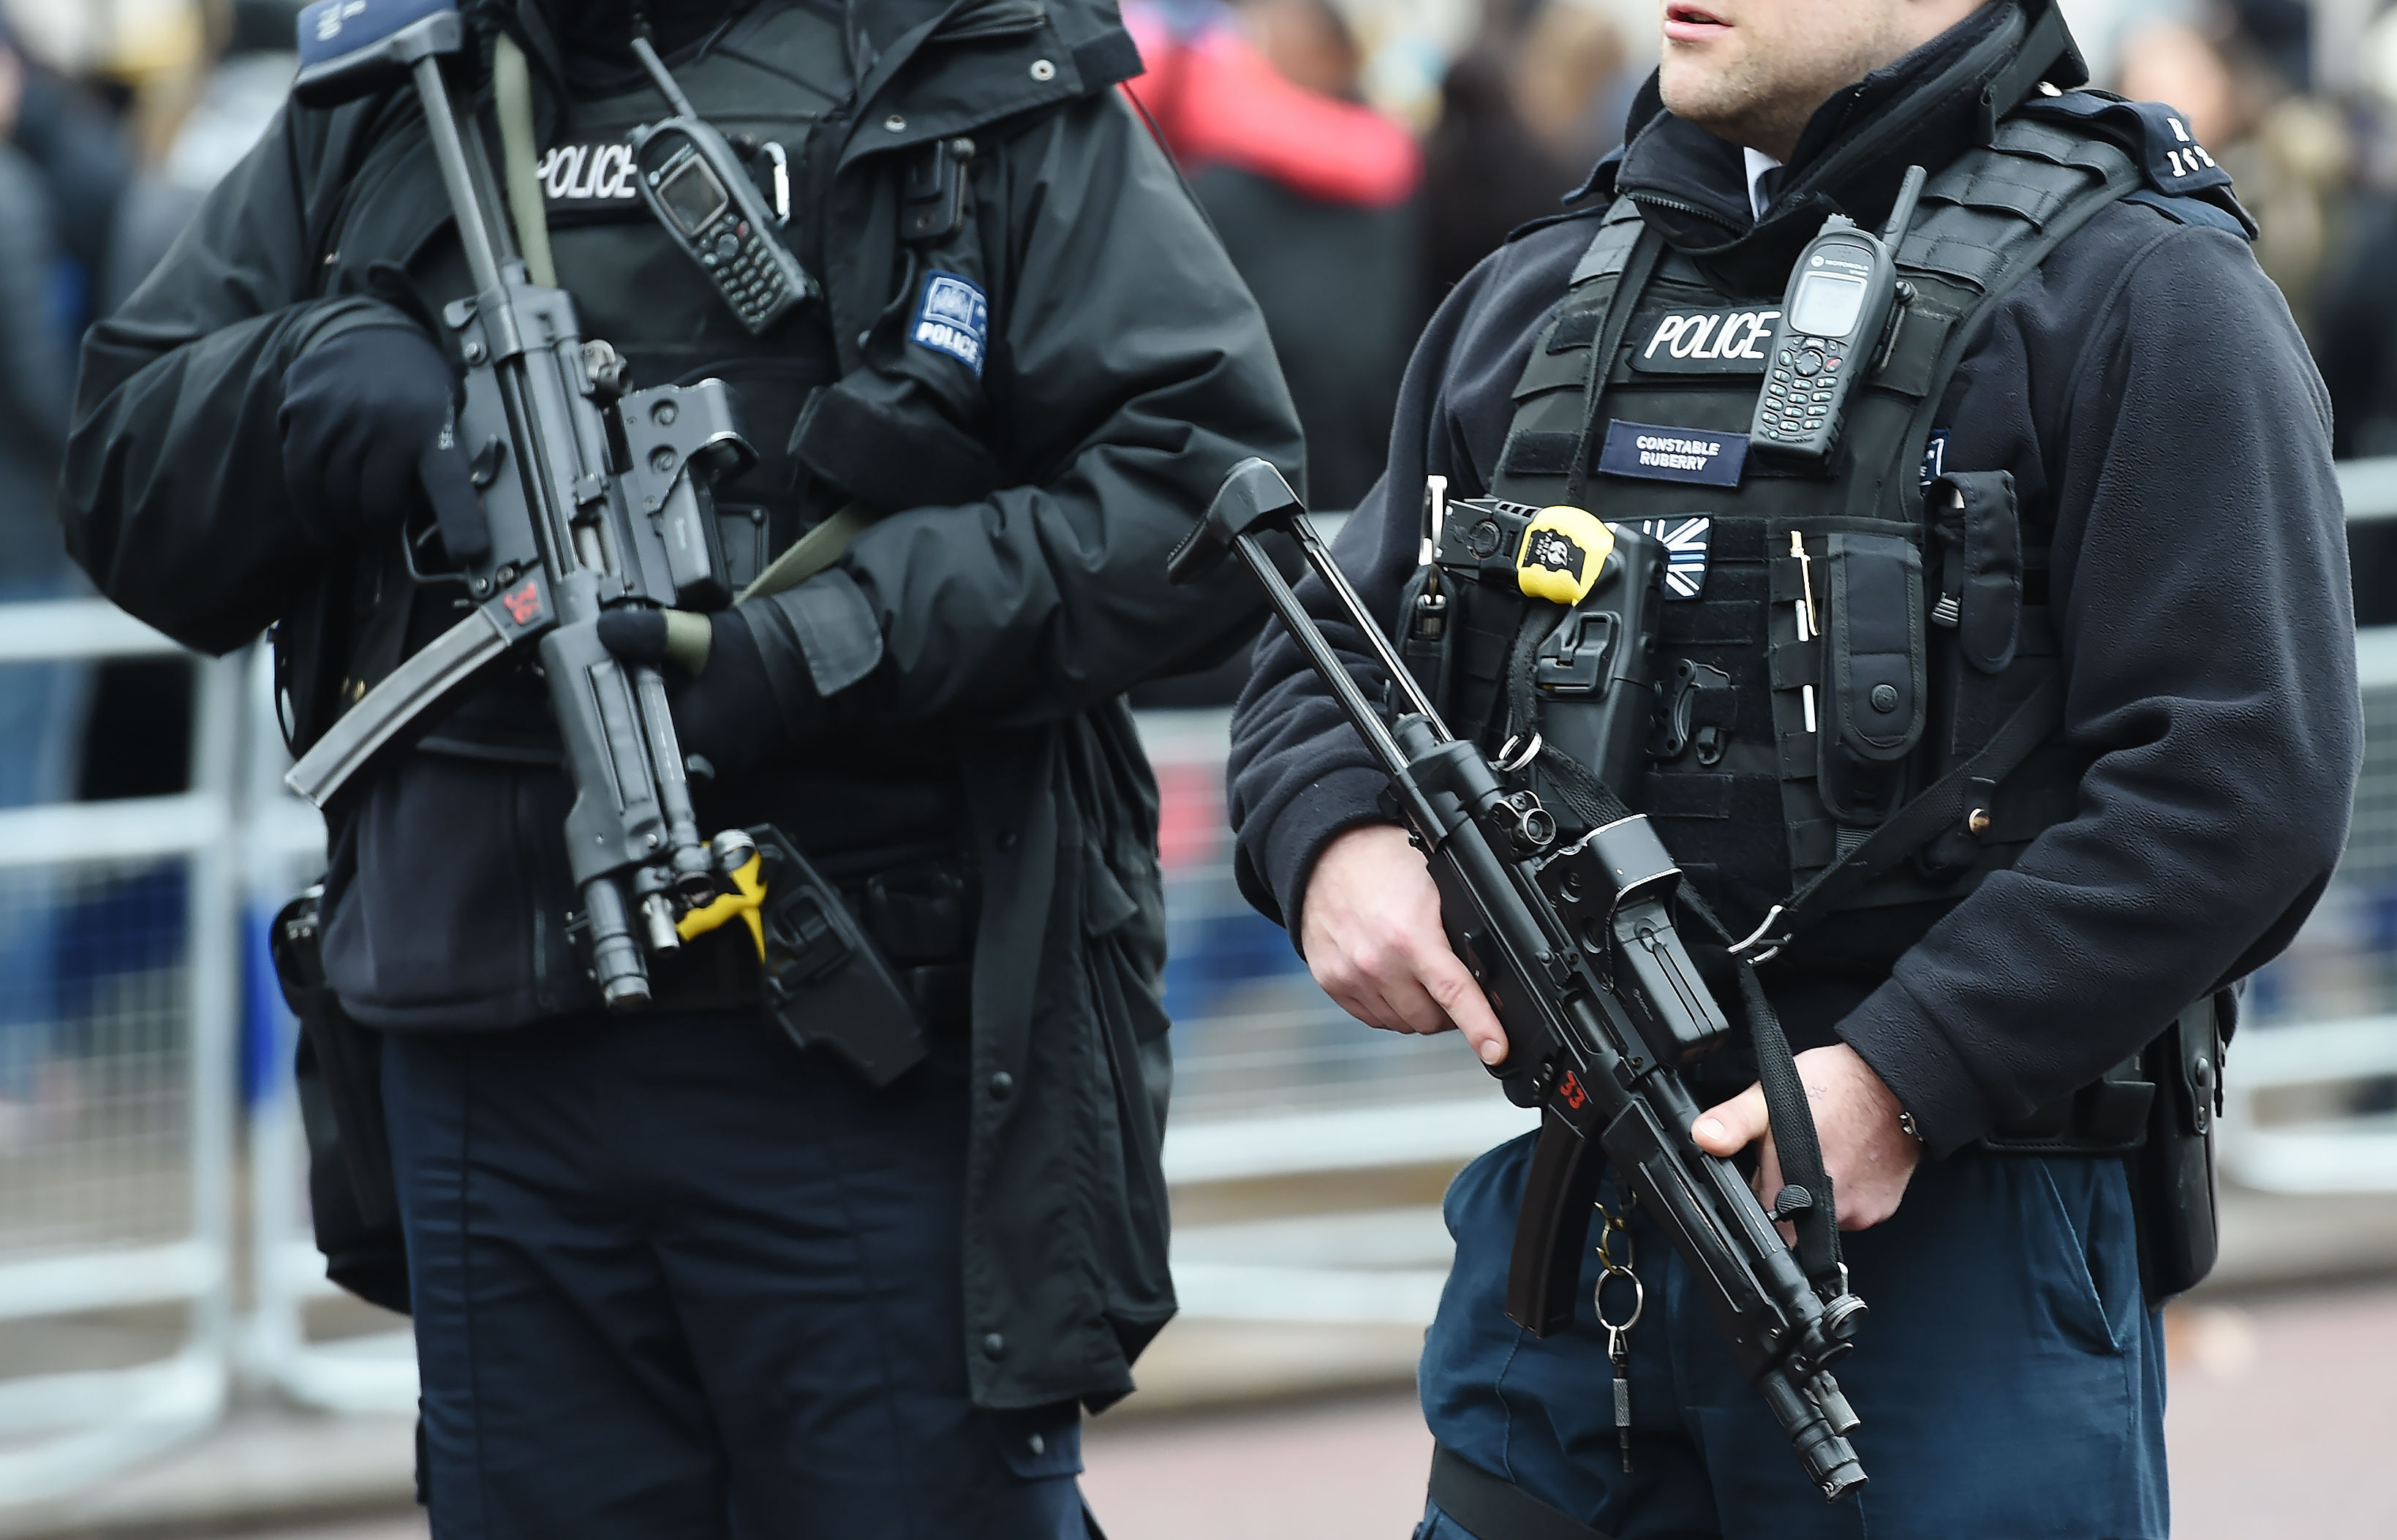 The report suggests that integration appears to be jeopardised by certain aspects of counter-terrorism policy (Charlotte Ball/PA Wire)